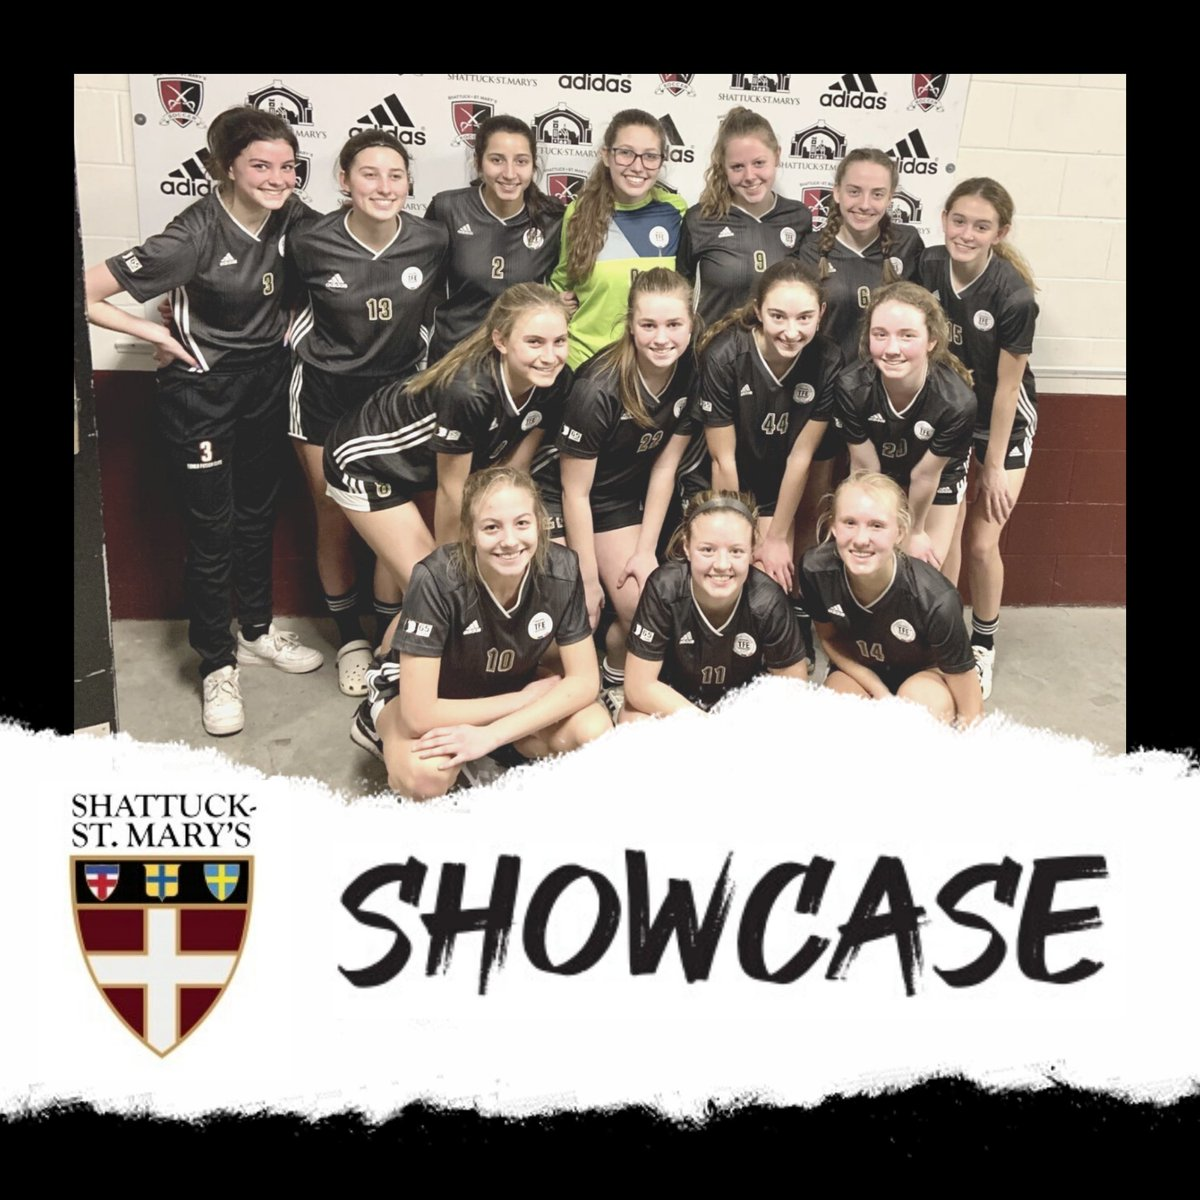 Congrats to our '03 Premier girls for a great showing and undefeated record at the @shattuckstmarys #CollegeShowcase this weekend. Next stop, Phoenix, AZ! #DevelopHere #ForEachOther #EmbraceTheChasepic.twitter.com/3fLxWvR6KA